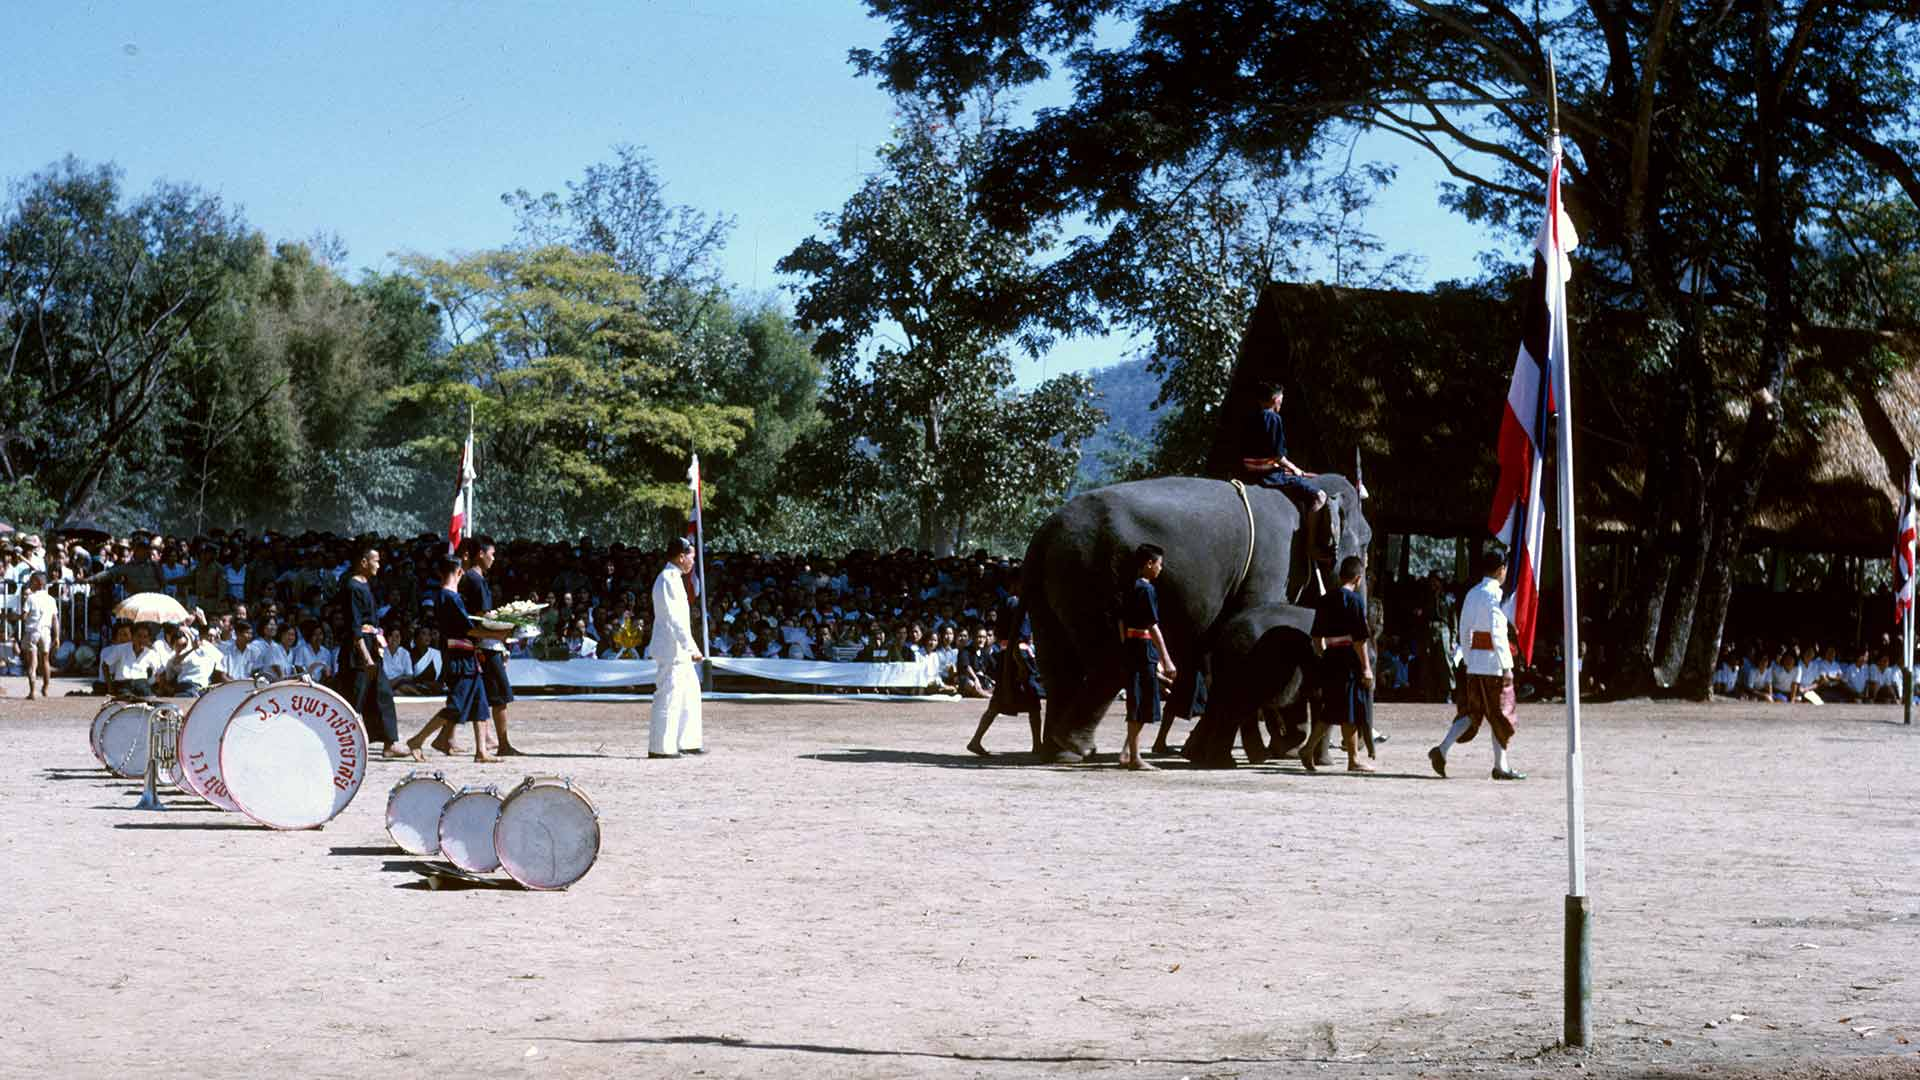 The presentation in Thailand of a white elephant to the late King H.M. Bhumibol Adulyadej  overview image